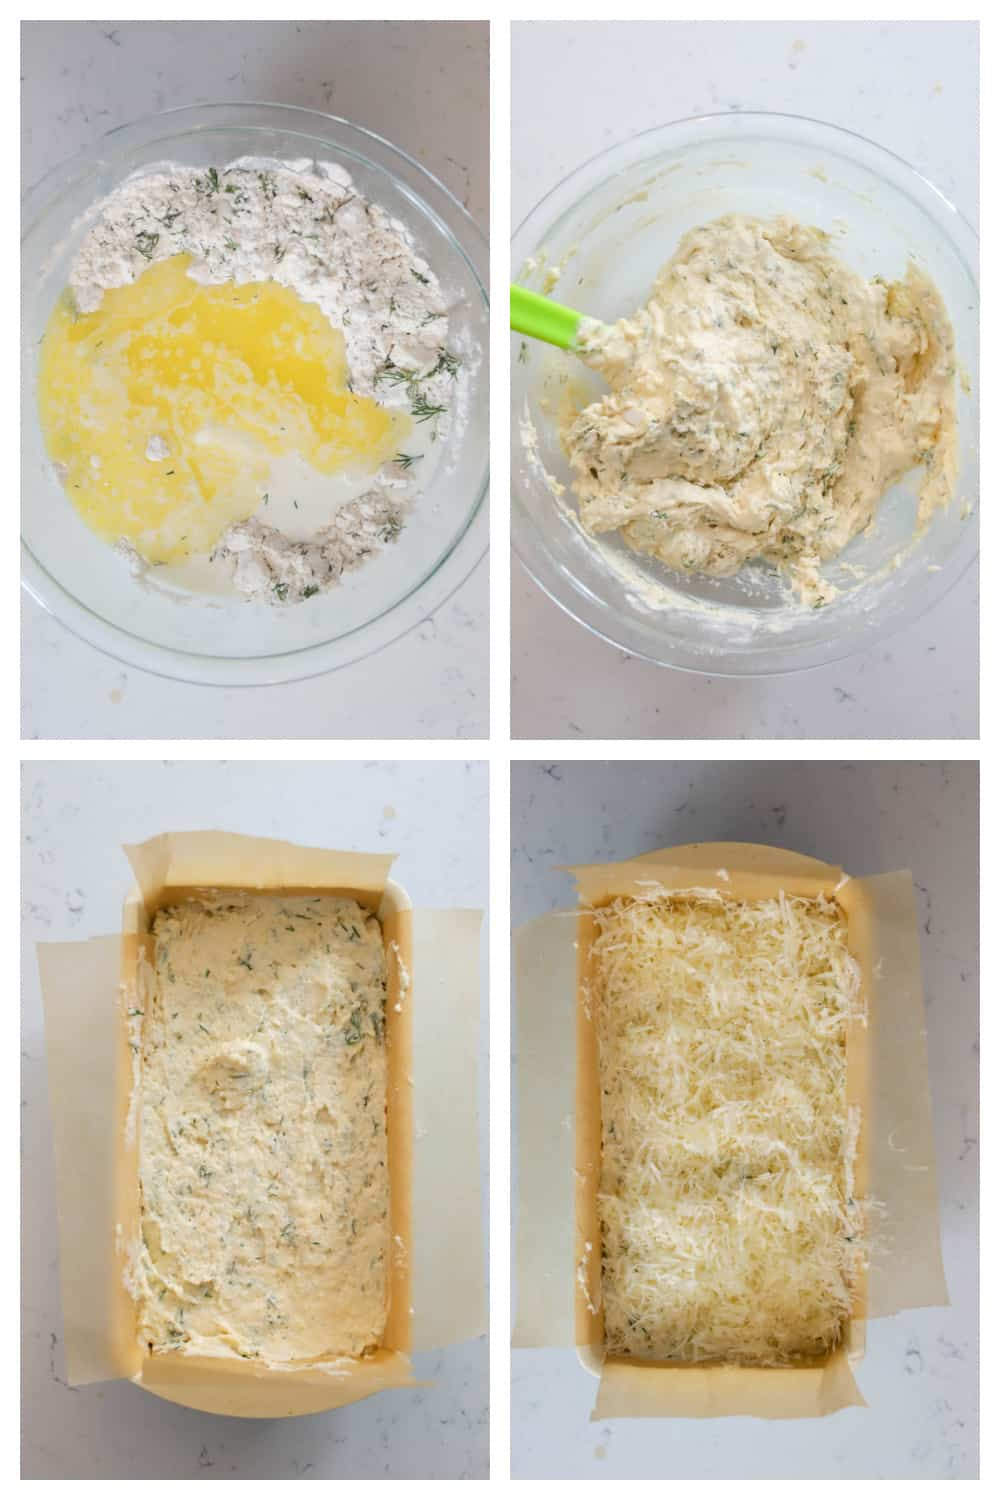 dill bread batter being mixed and spread into loaf pan